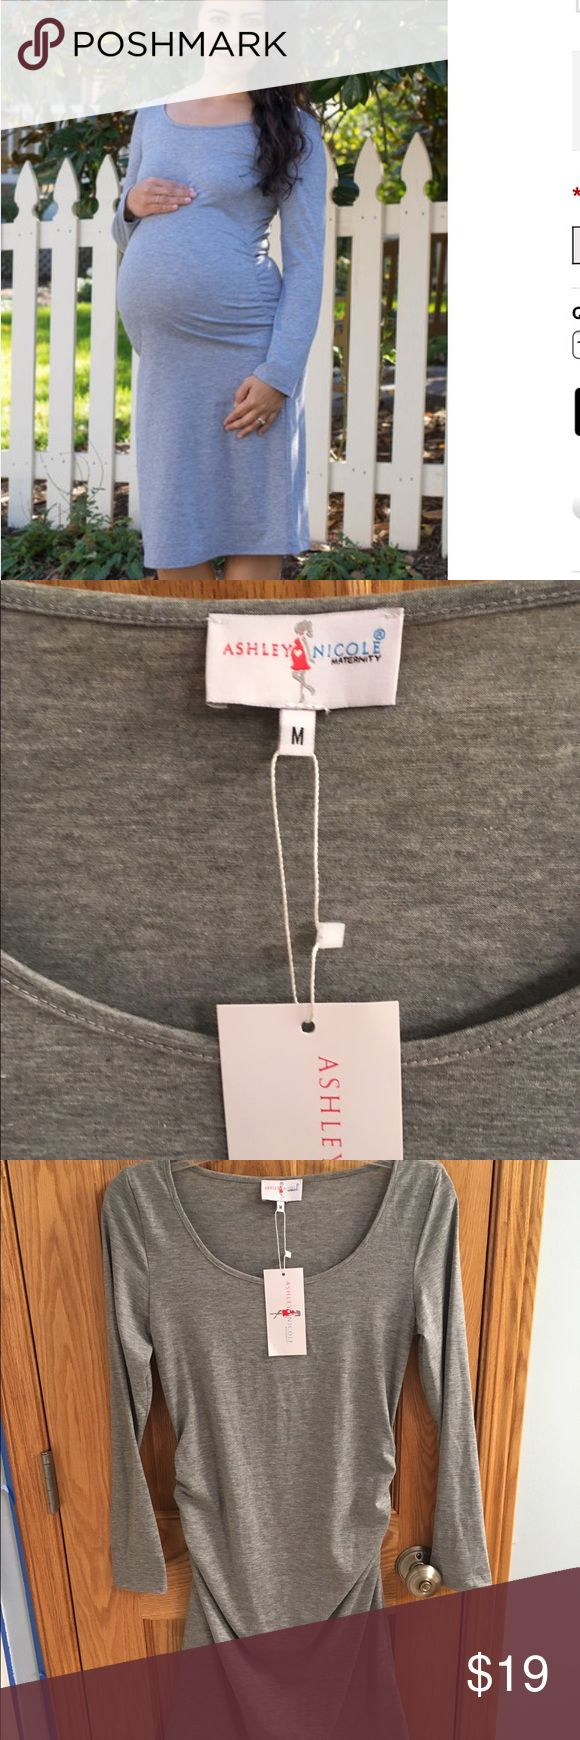 NWT Ashley Nicole Maternity long grey dress Never been worn heather grey maternity dress in a size medium. Ashley Nicole Maternity Dresses Long Sleeve